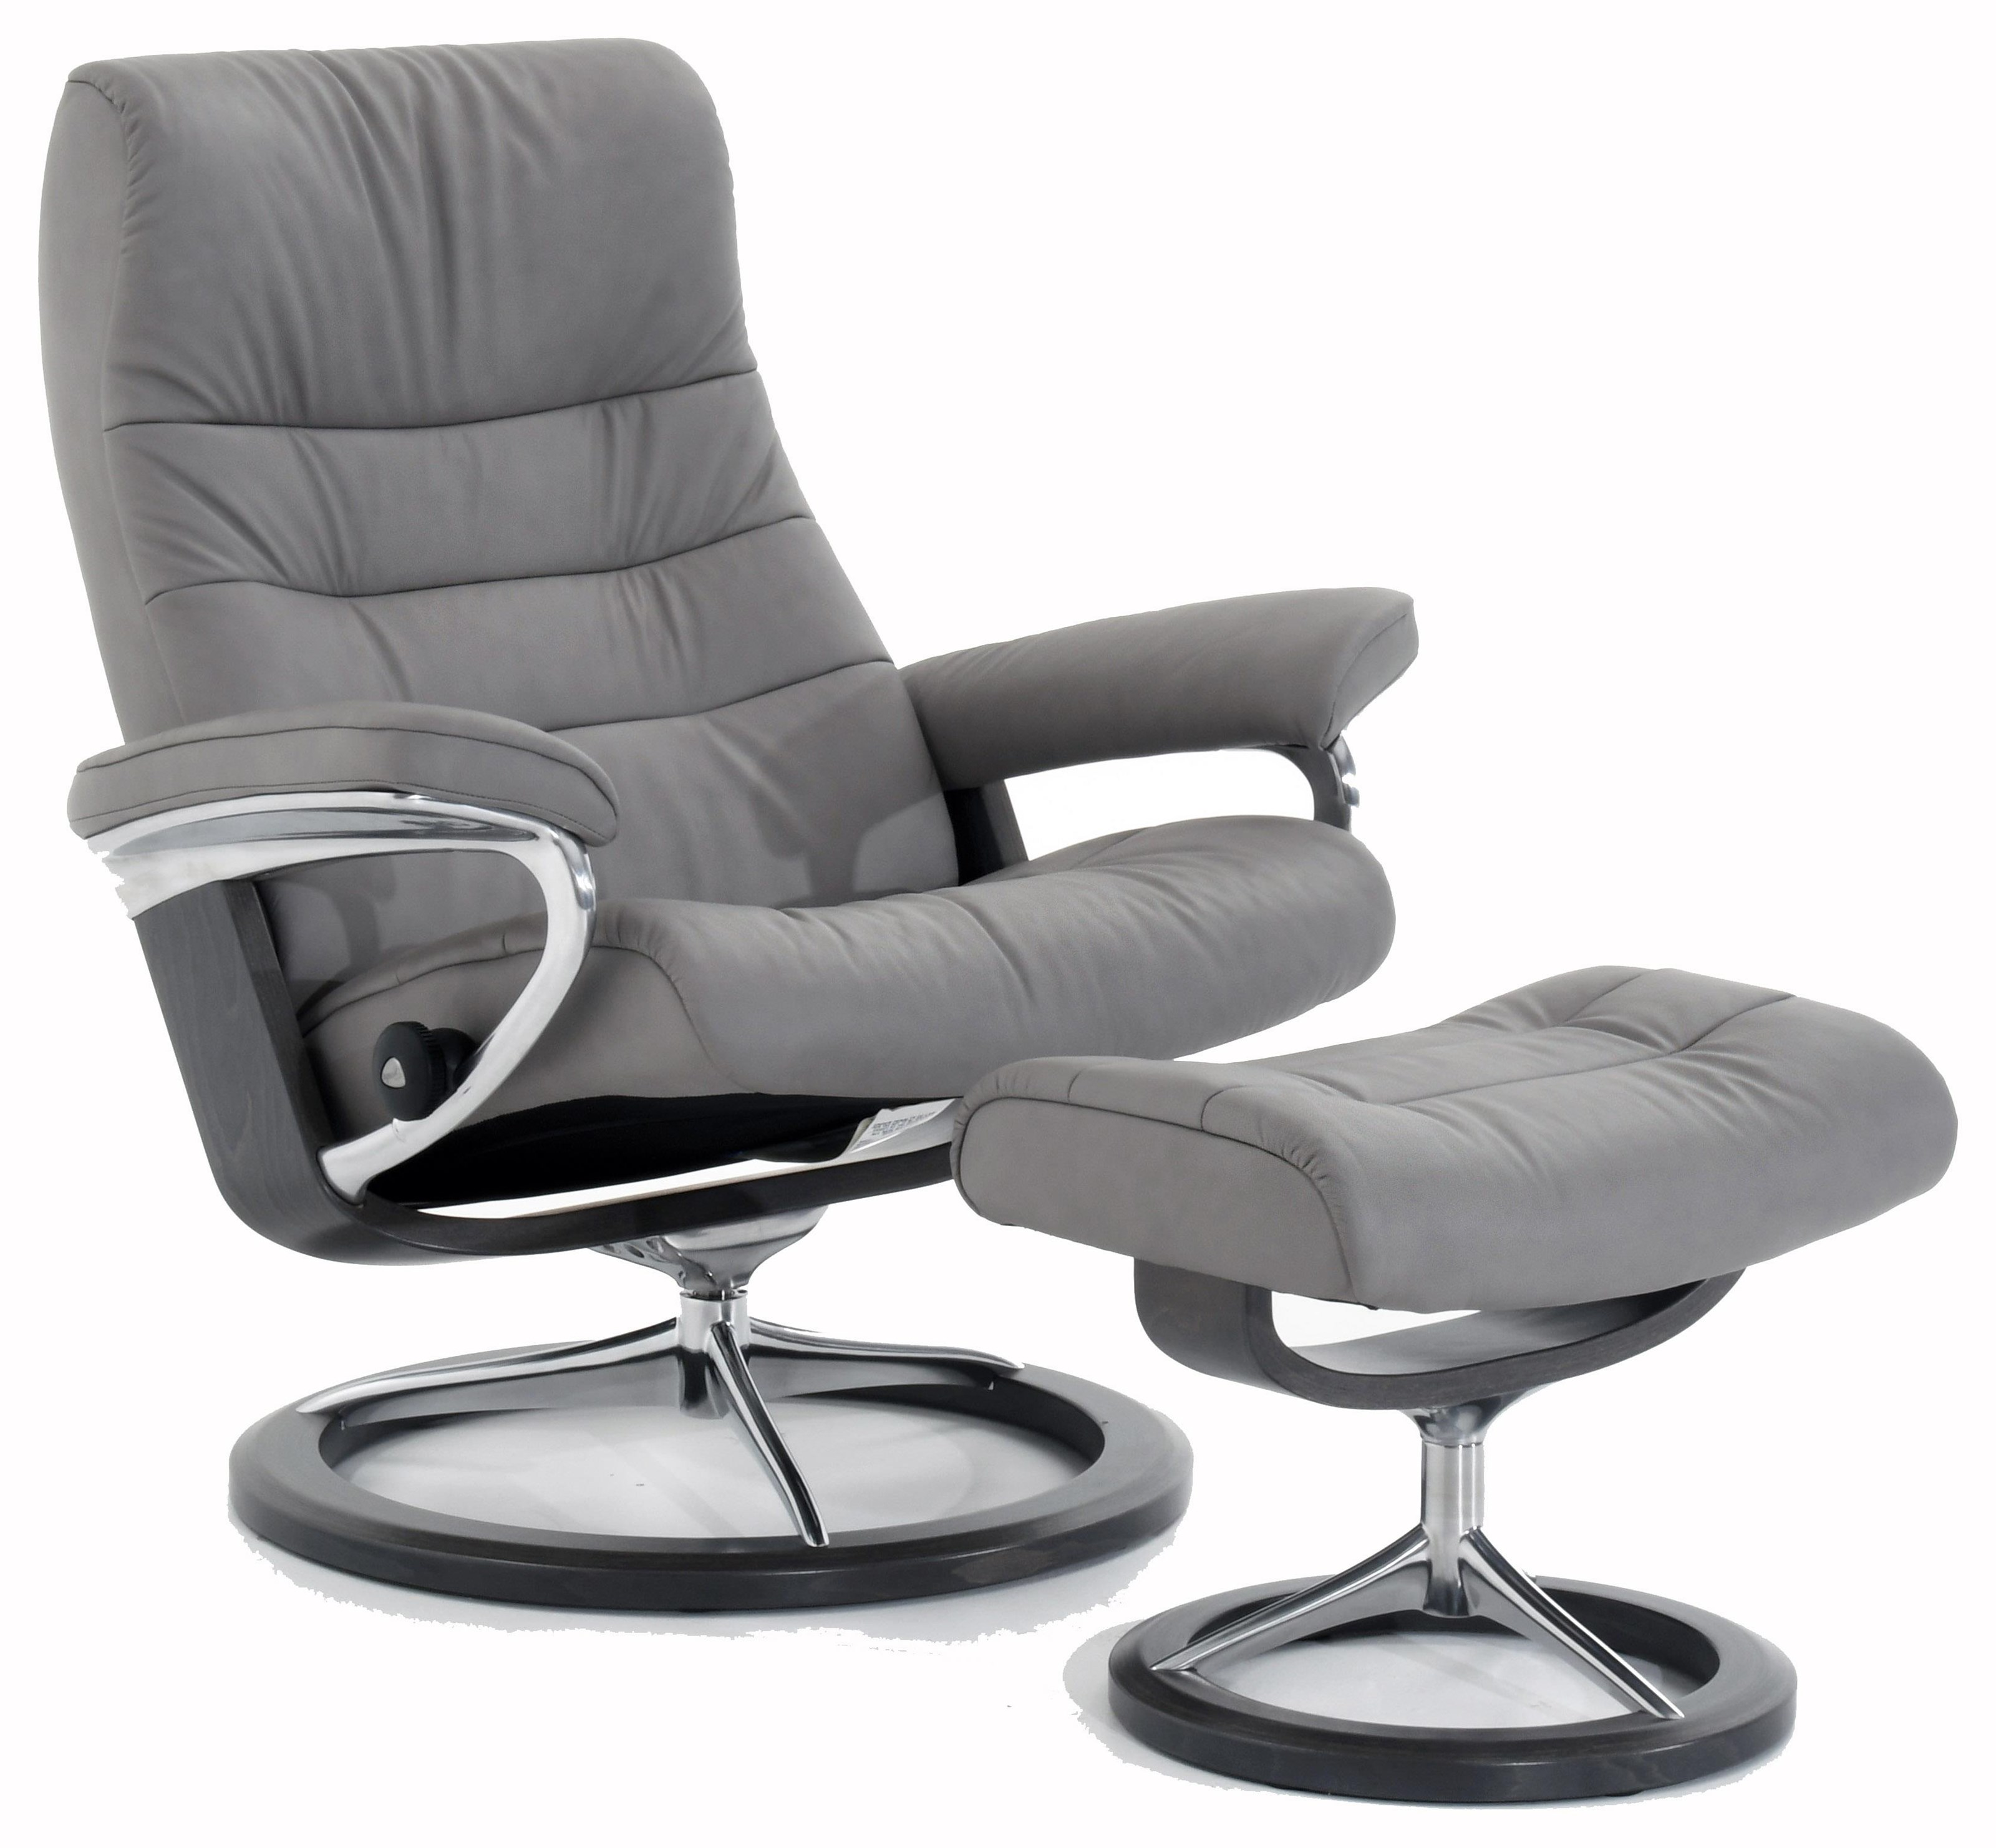 Opal Large Opal Signature Chair by Stressless at Baer's Furniture